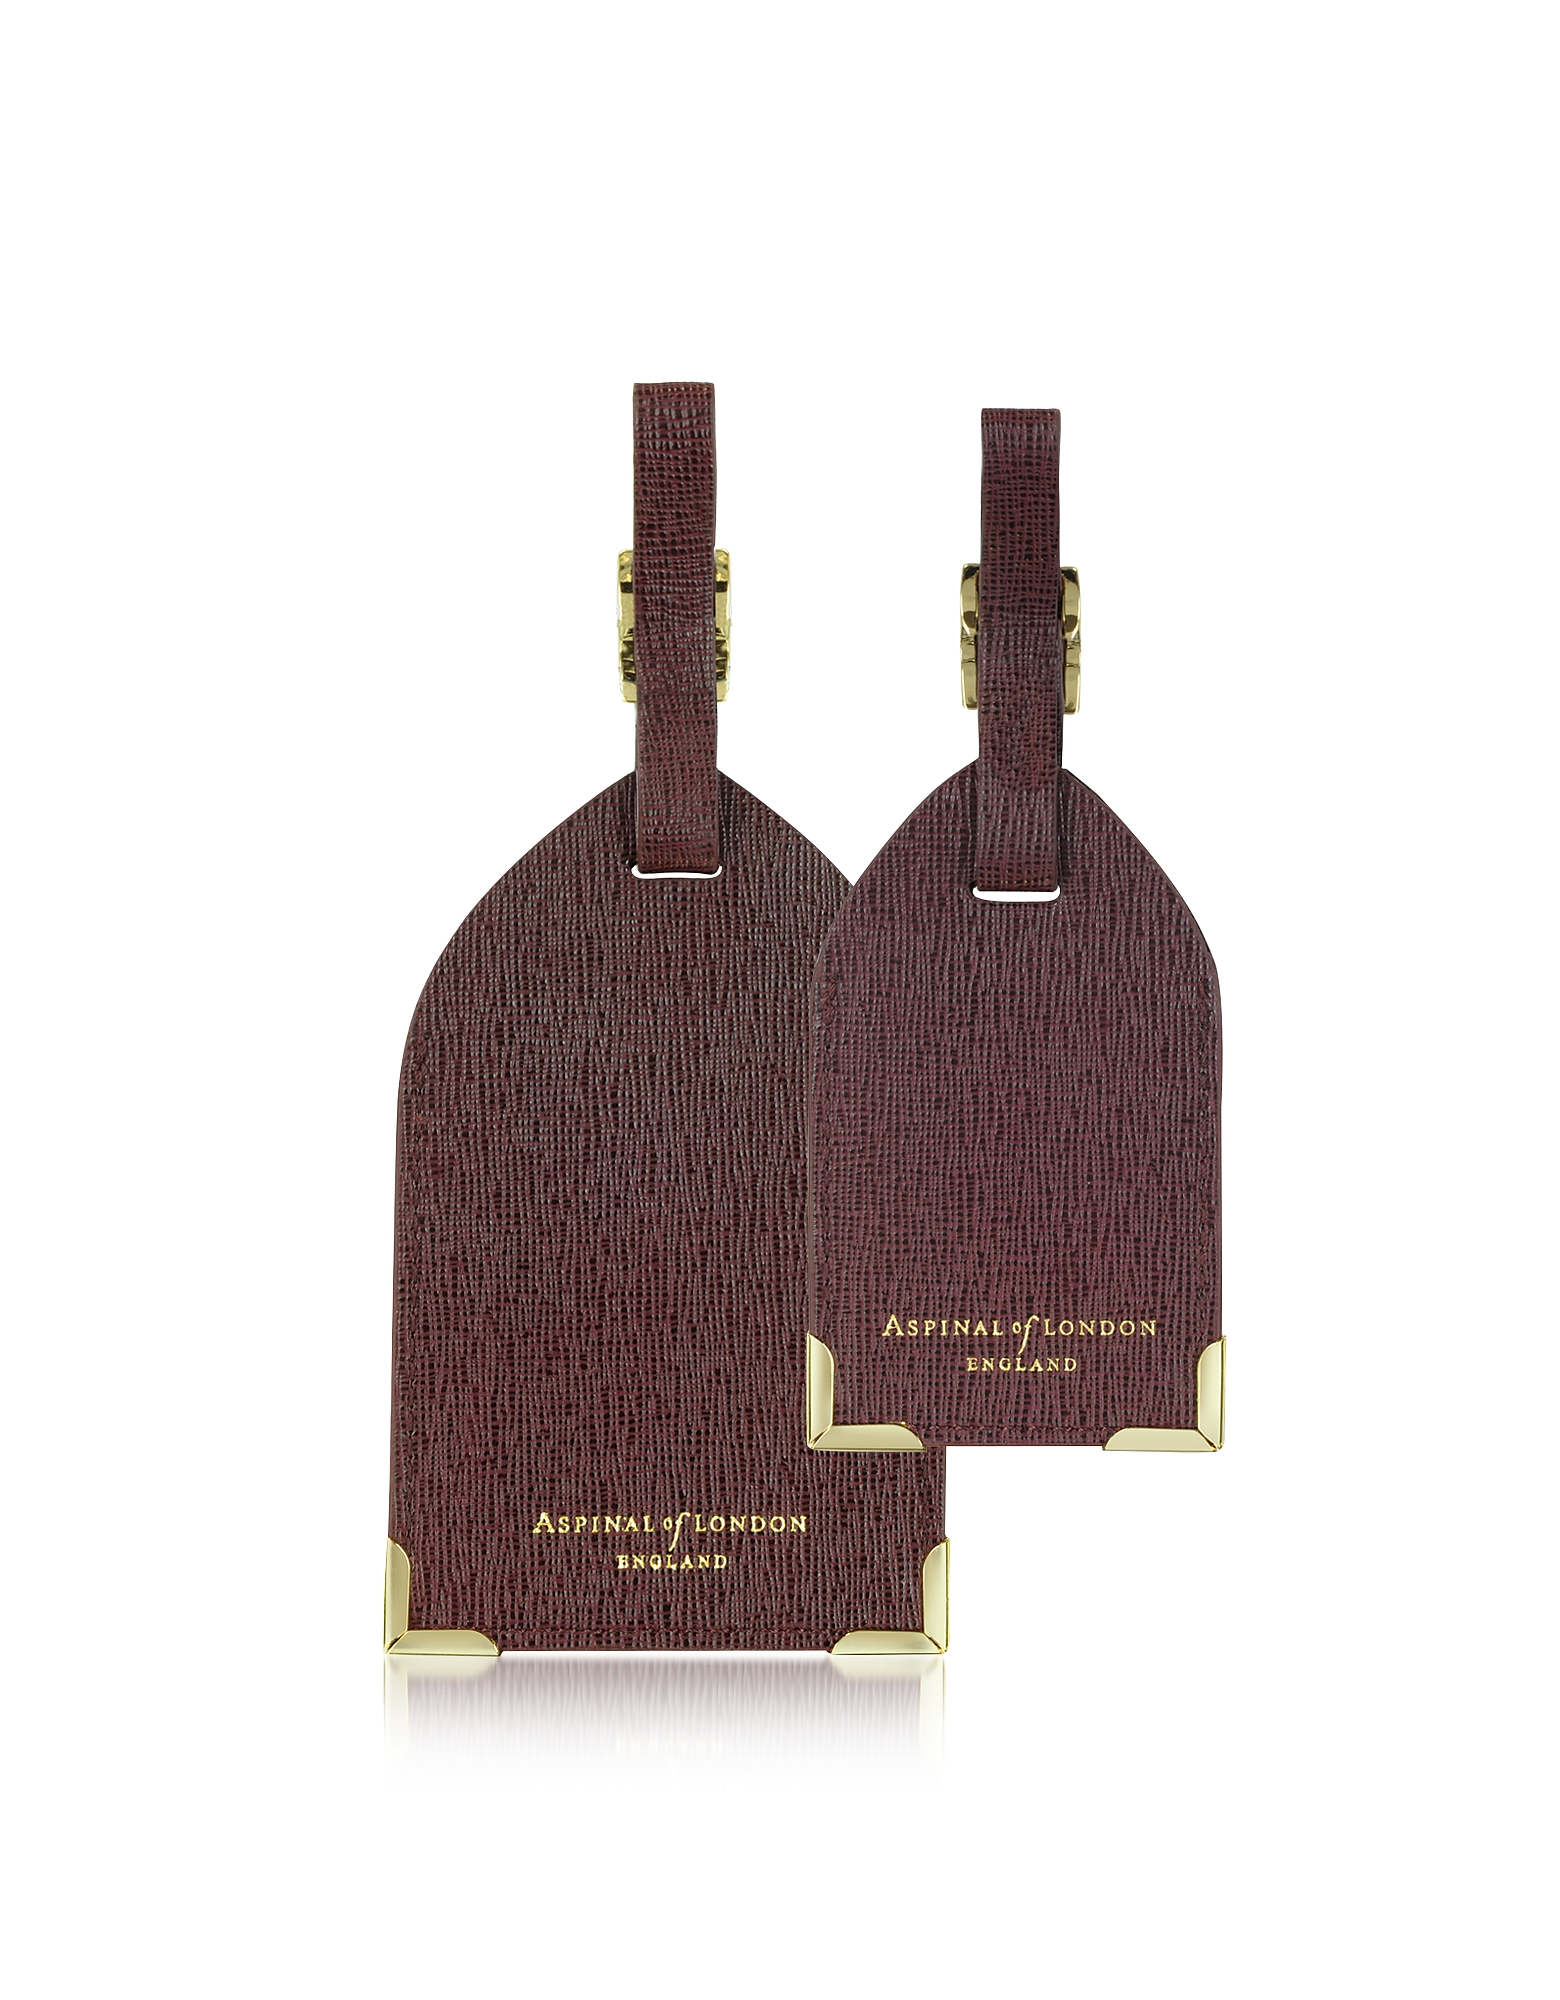 Aspinal of London Designer Handbags,  Set of 2 Burgundy Saffiano Luggage Tags